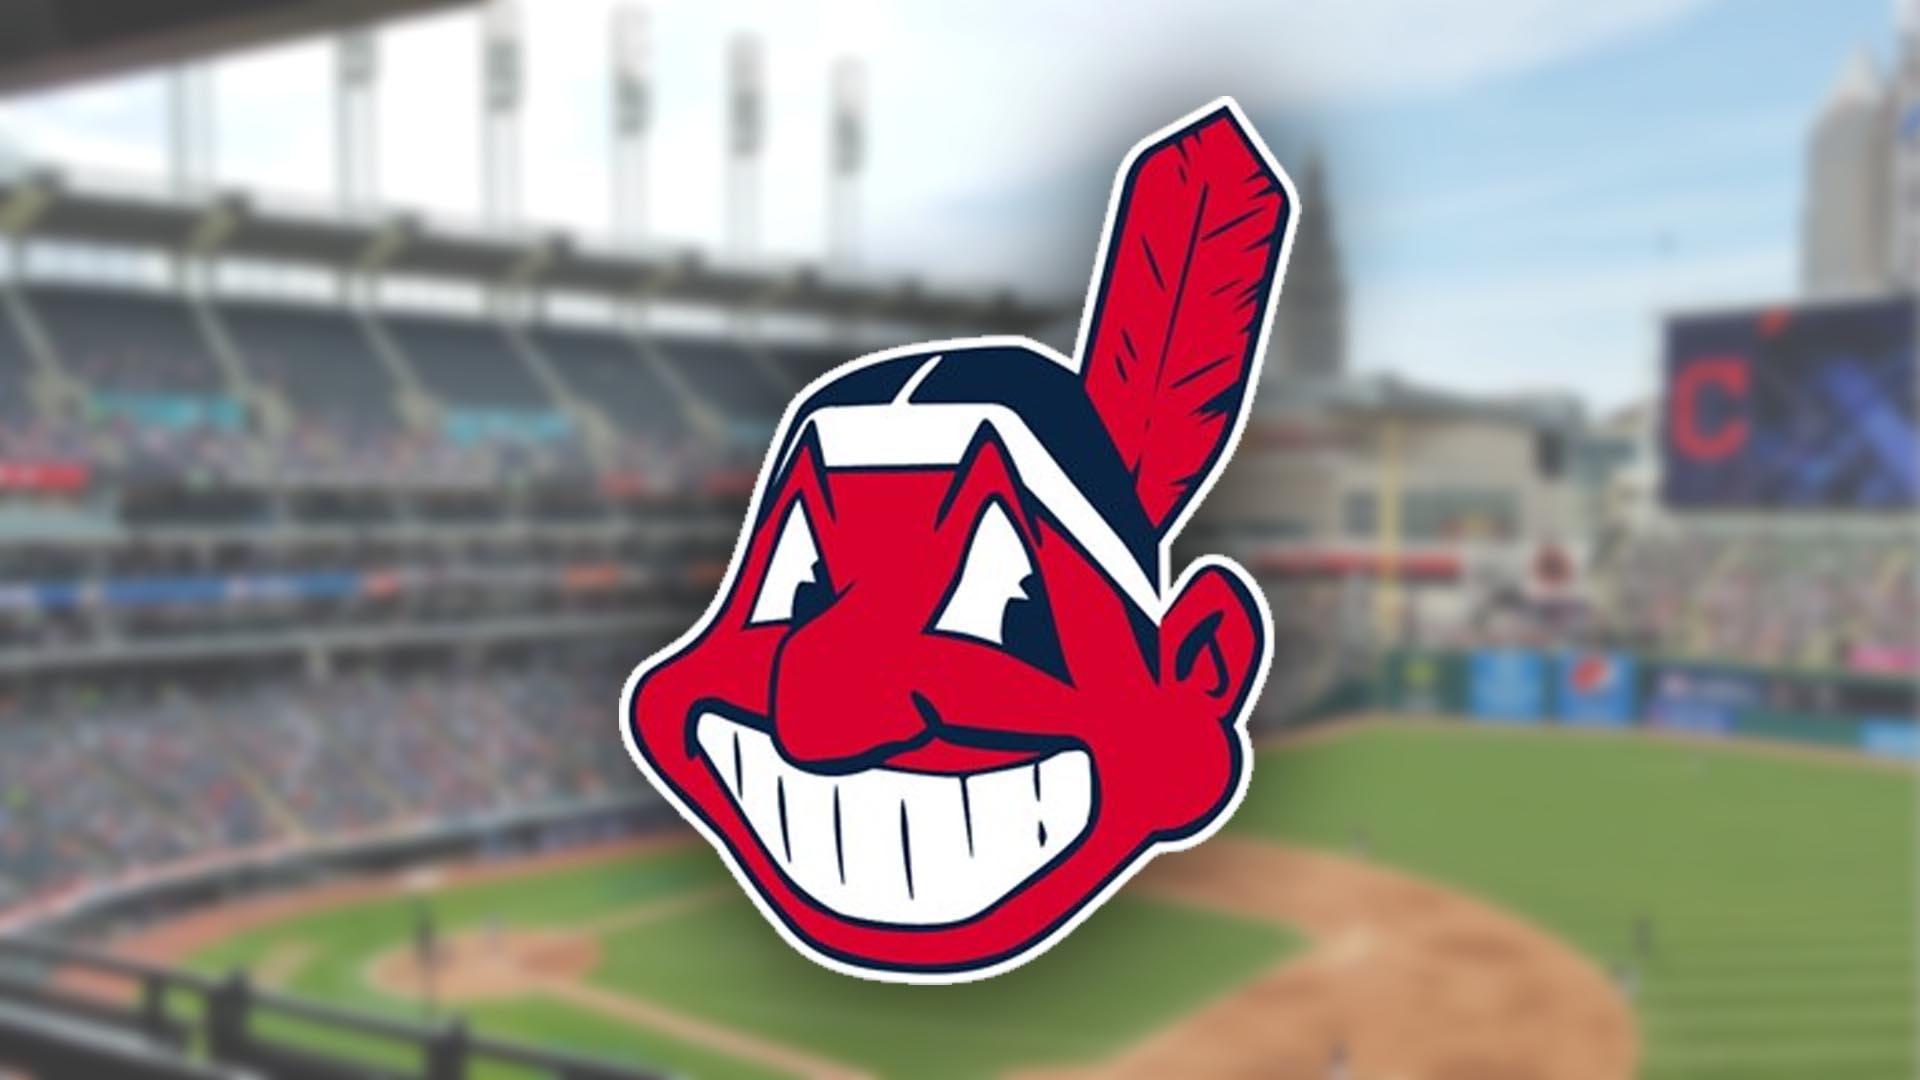 Cleveland indians dropping chief wahoo logo kobi tv nbc5 nbcnc the cleveland indians will stop using the controversial chief wahoo logo biocorpaavc Choice Image